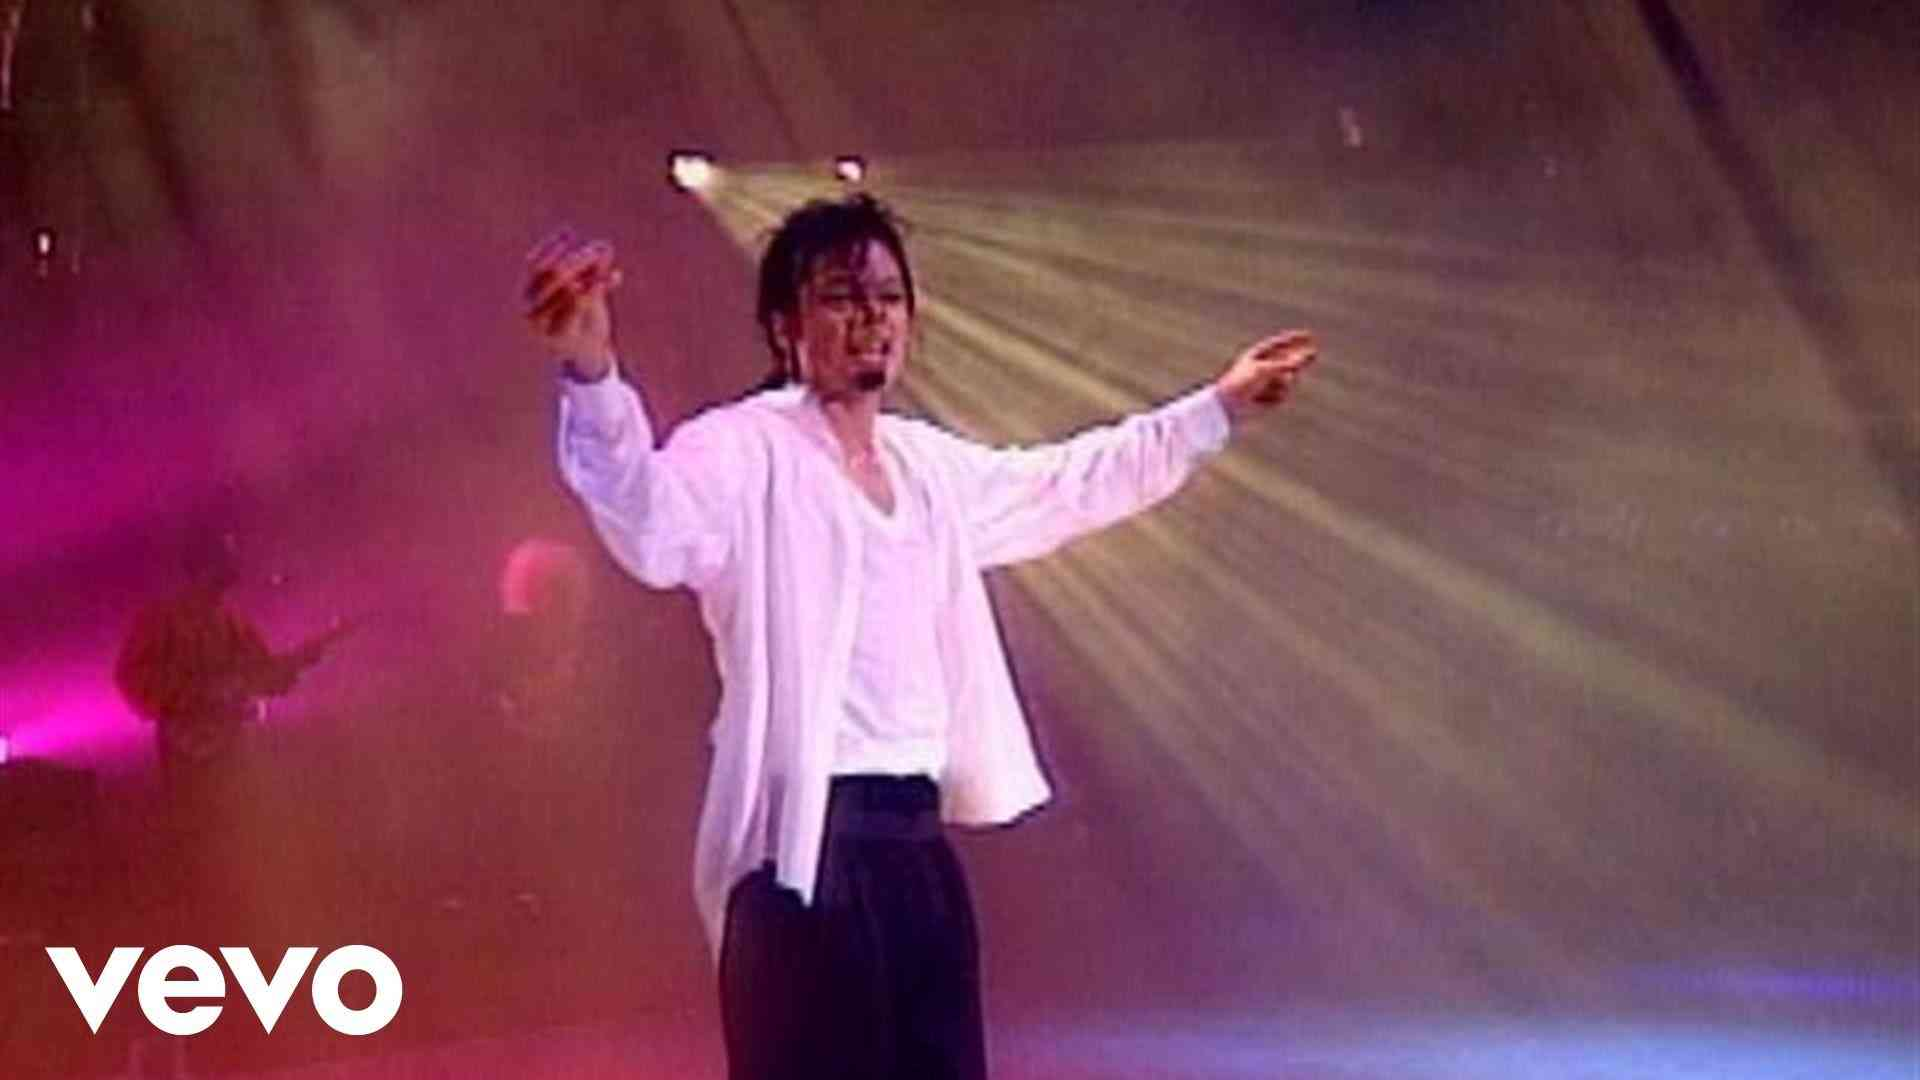 Michael Jackson - Will You Be There (Official Video) - YouTube